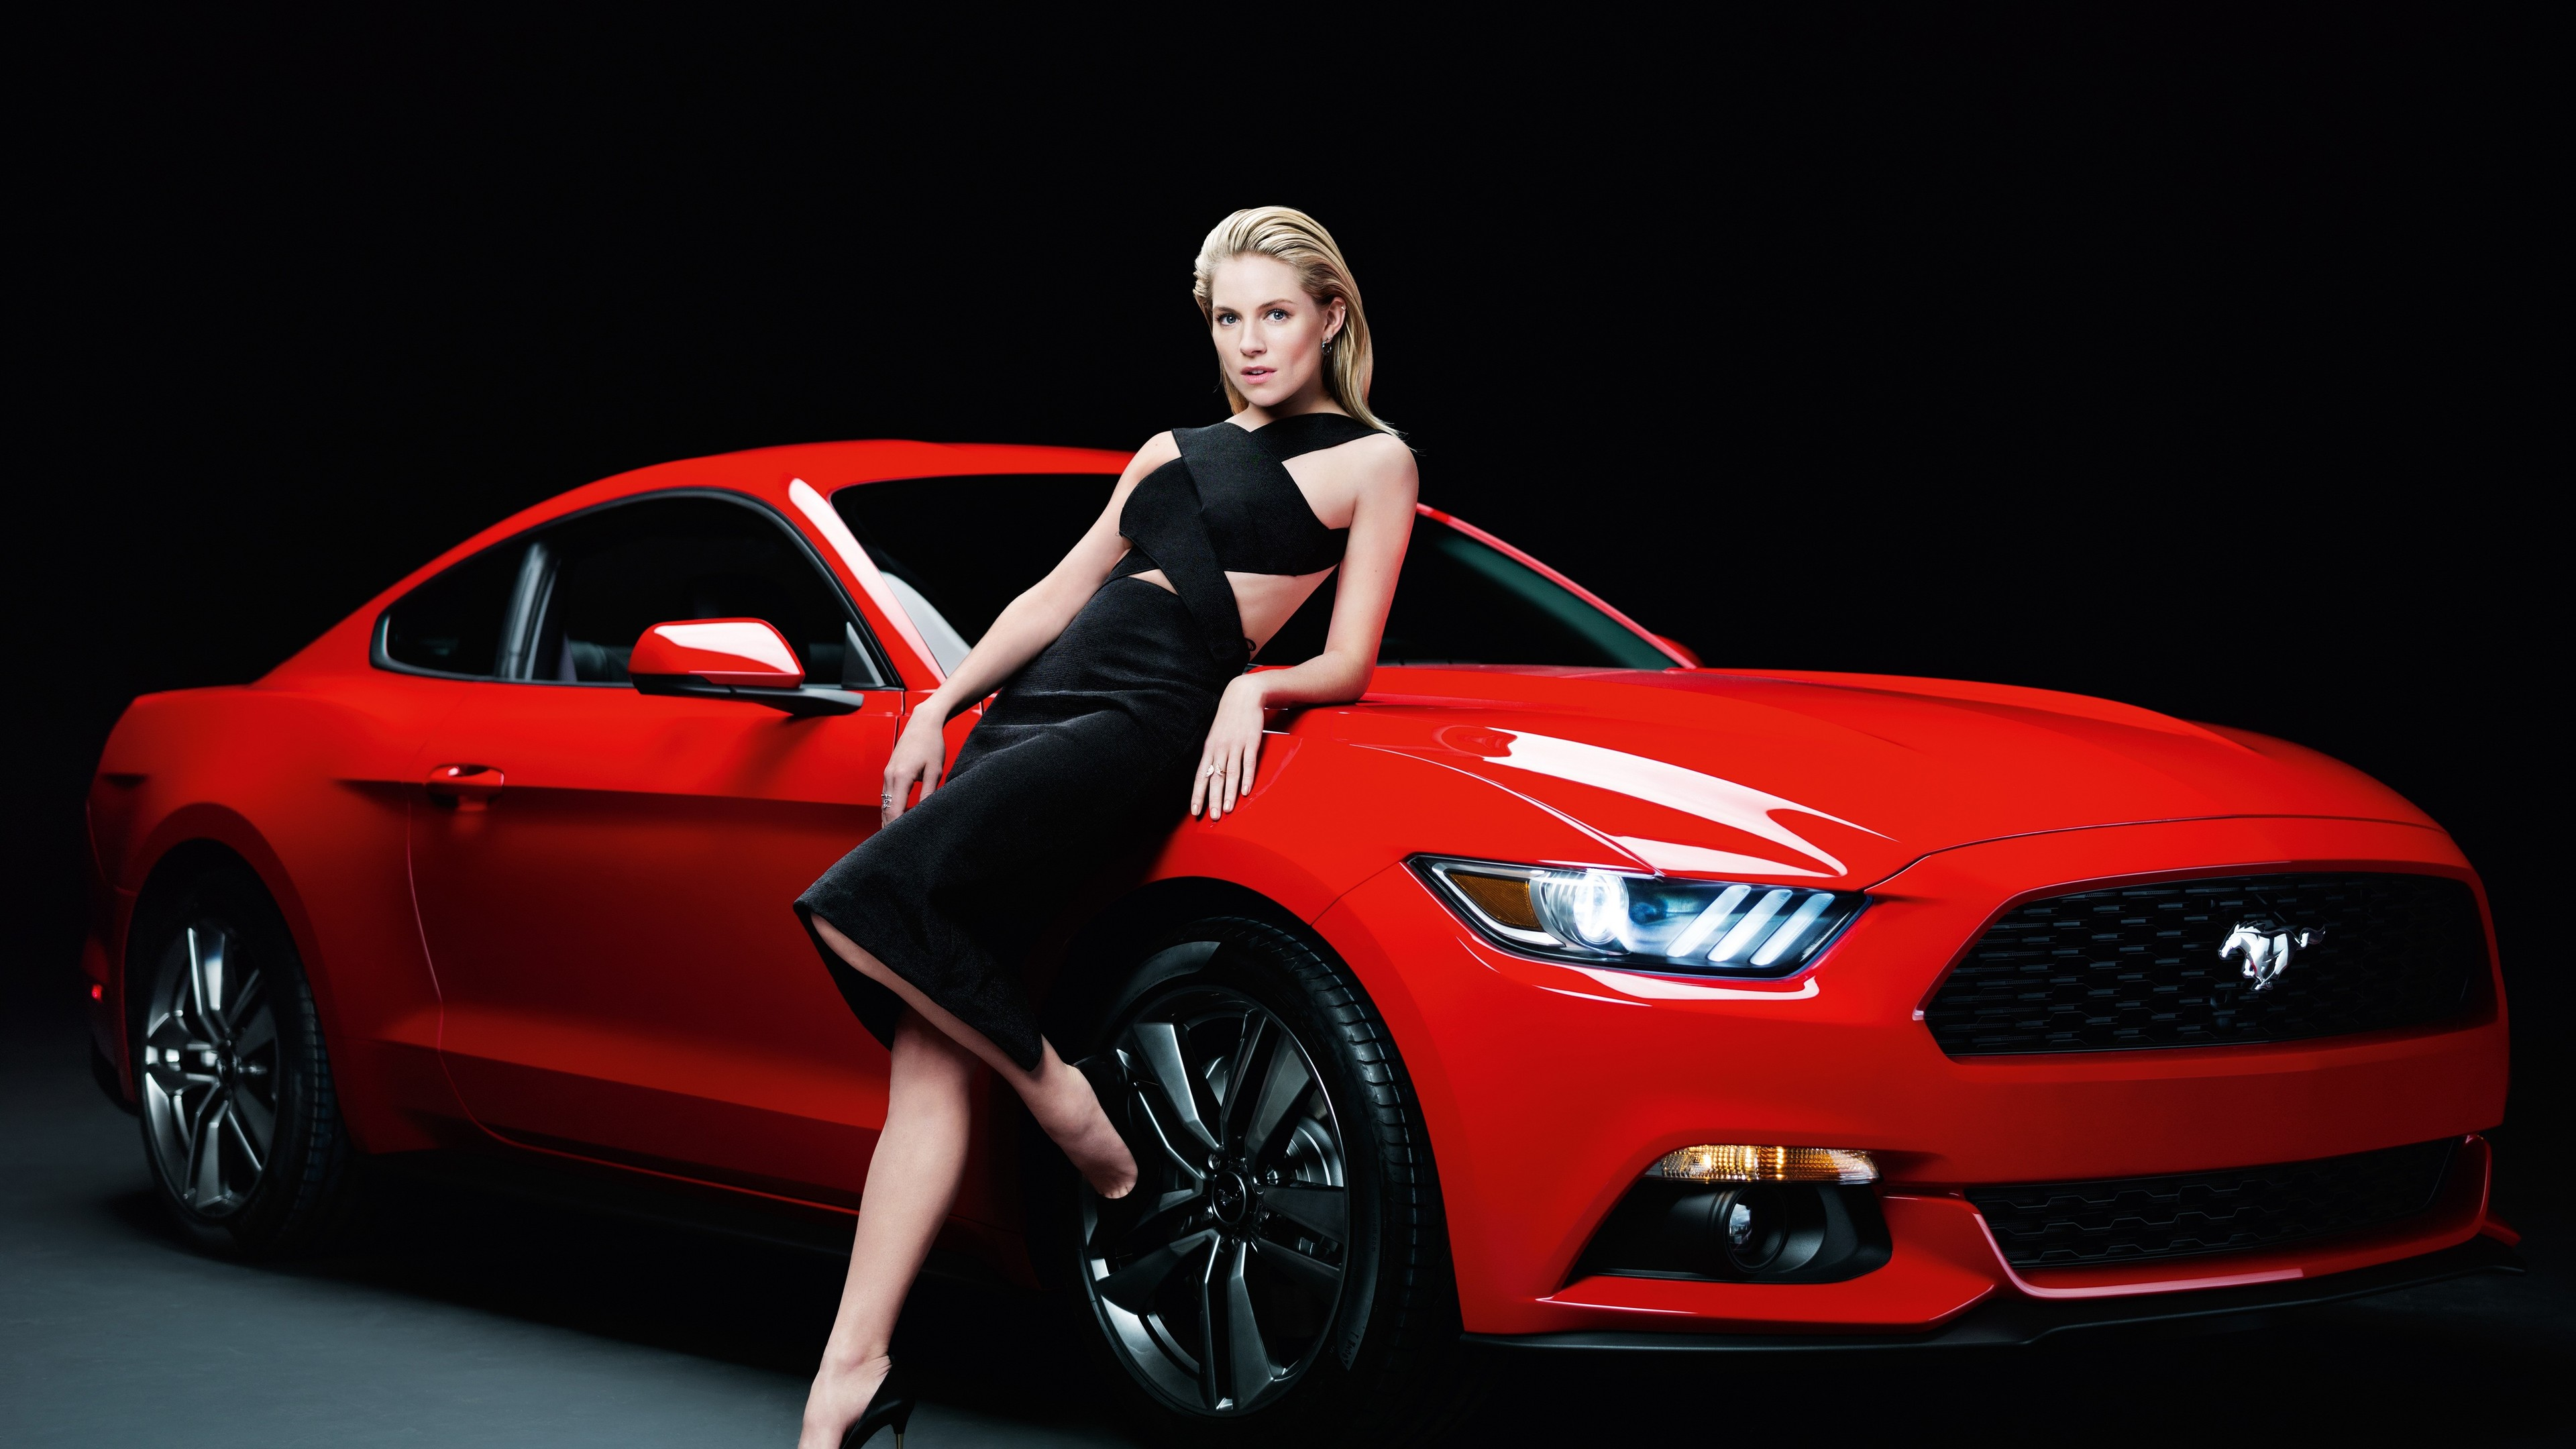 sienna miller with ford mustang photoshoot 1536946228 - Sienna Miller With Ford Mustang Photoshoot - sienna miller wallpapers, photoshoot wallpapers, hd-wallpapers, girls wallpapers, celebrities wallpapers, 4k-wallpapers